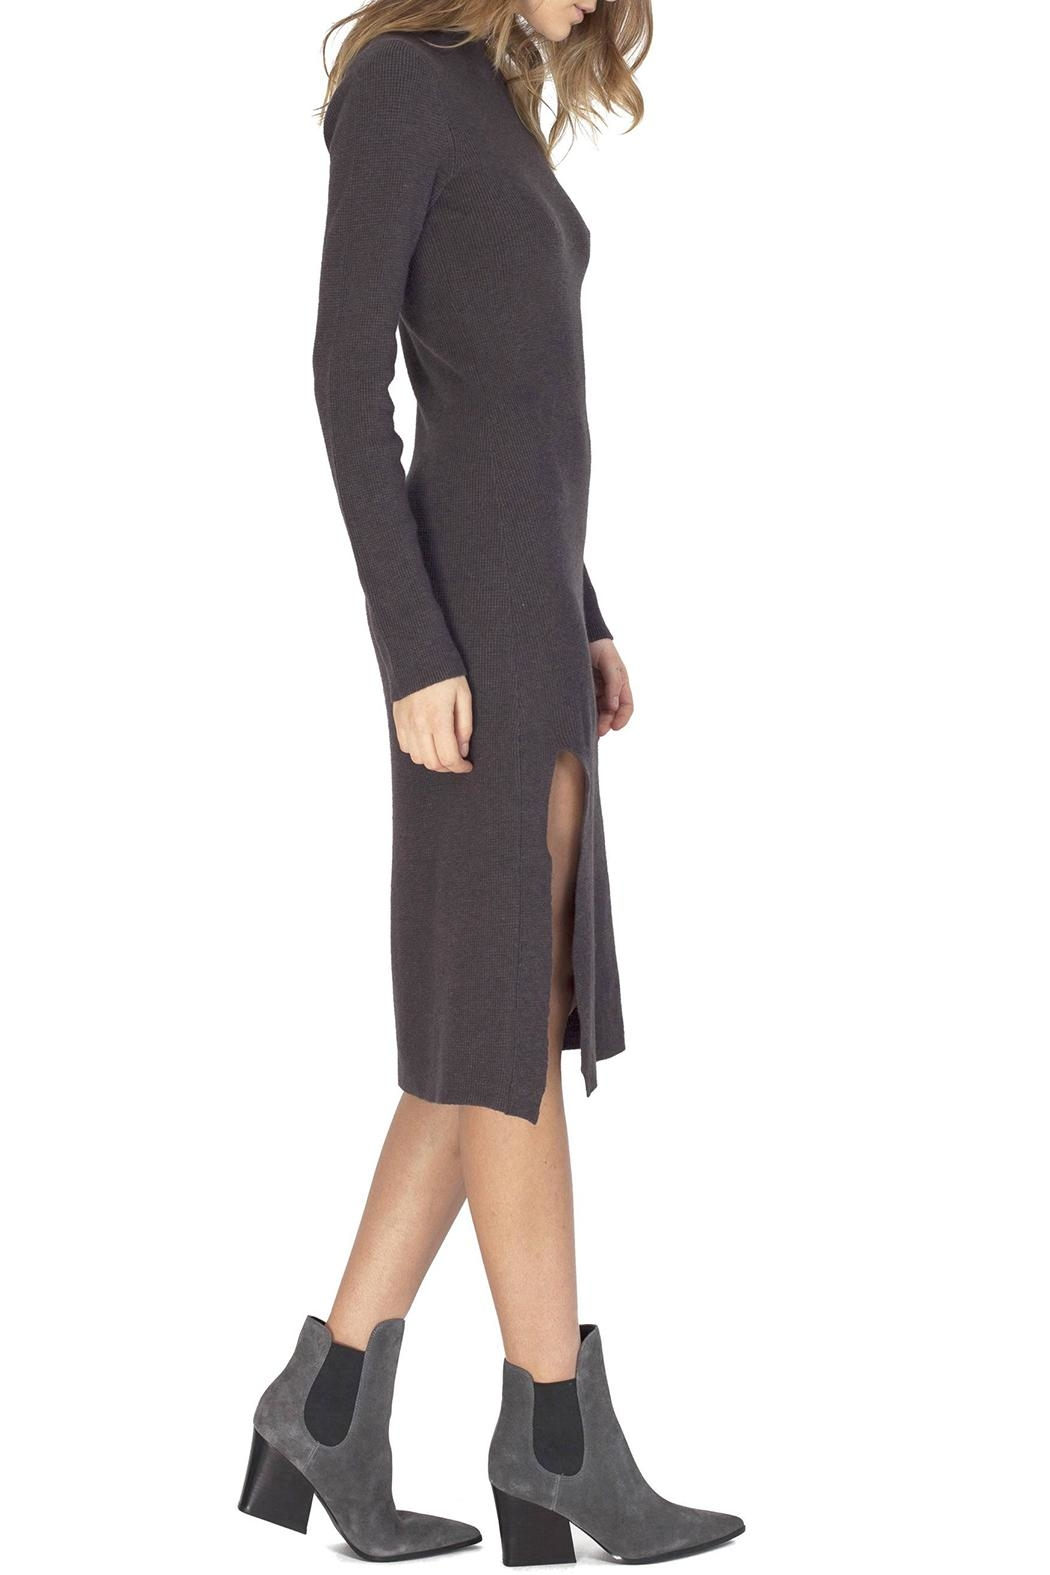 Gentle Fawn Quinn Sweater Dress - Front Full Image